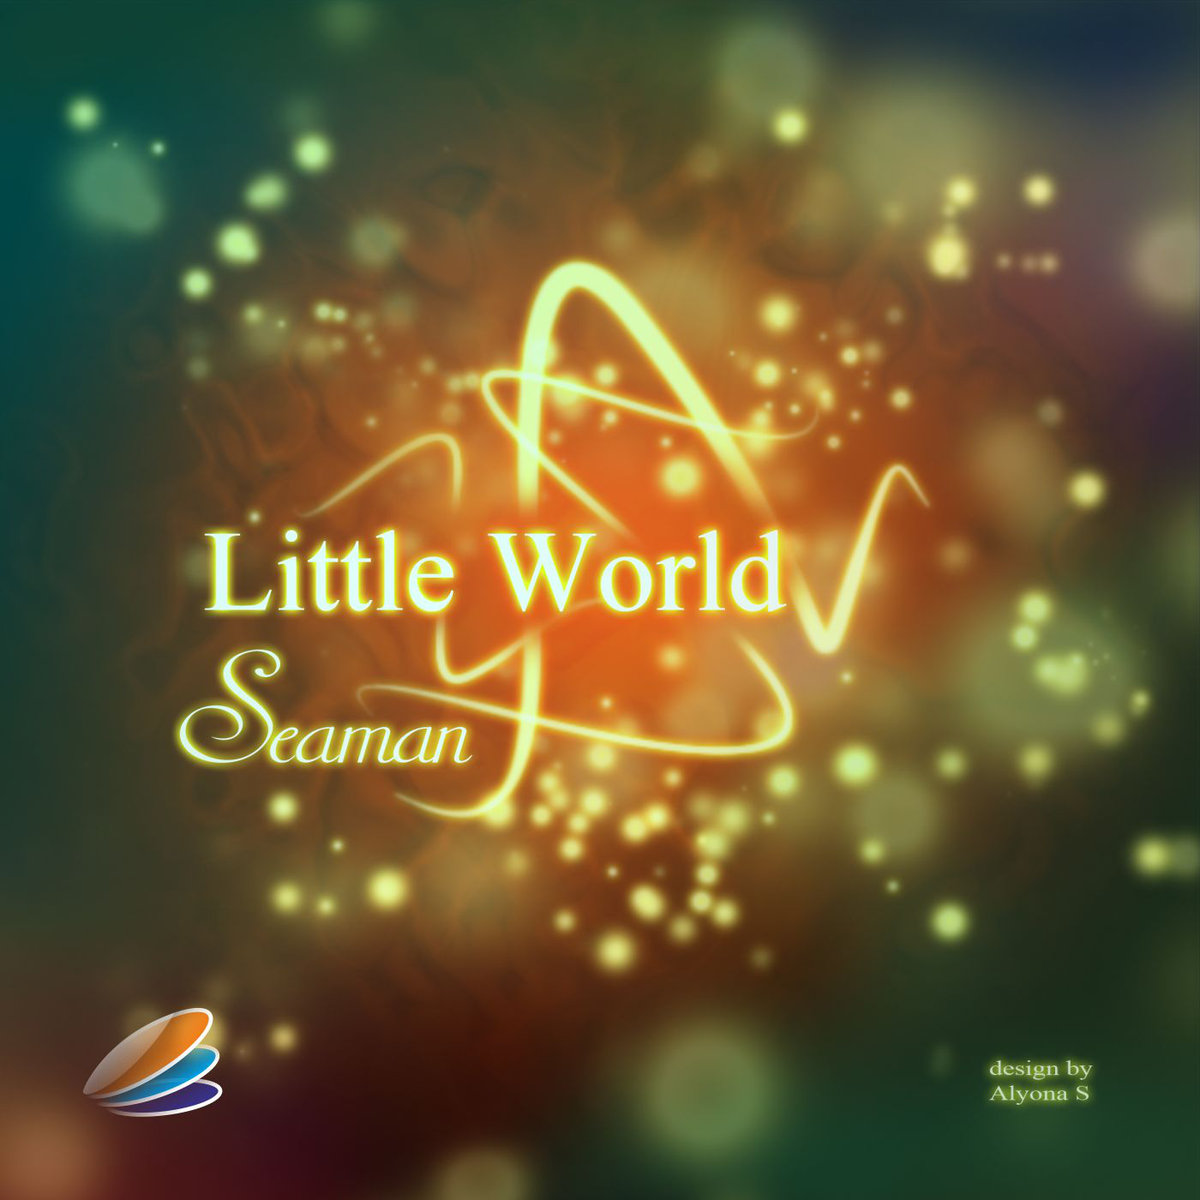 Seaman - Little World